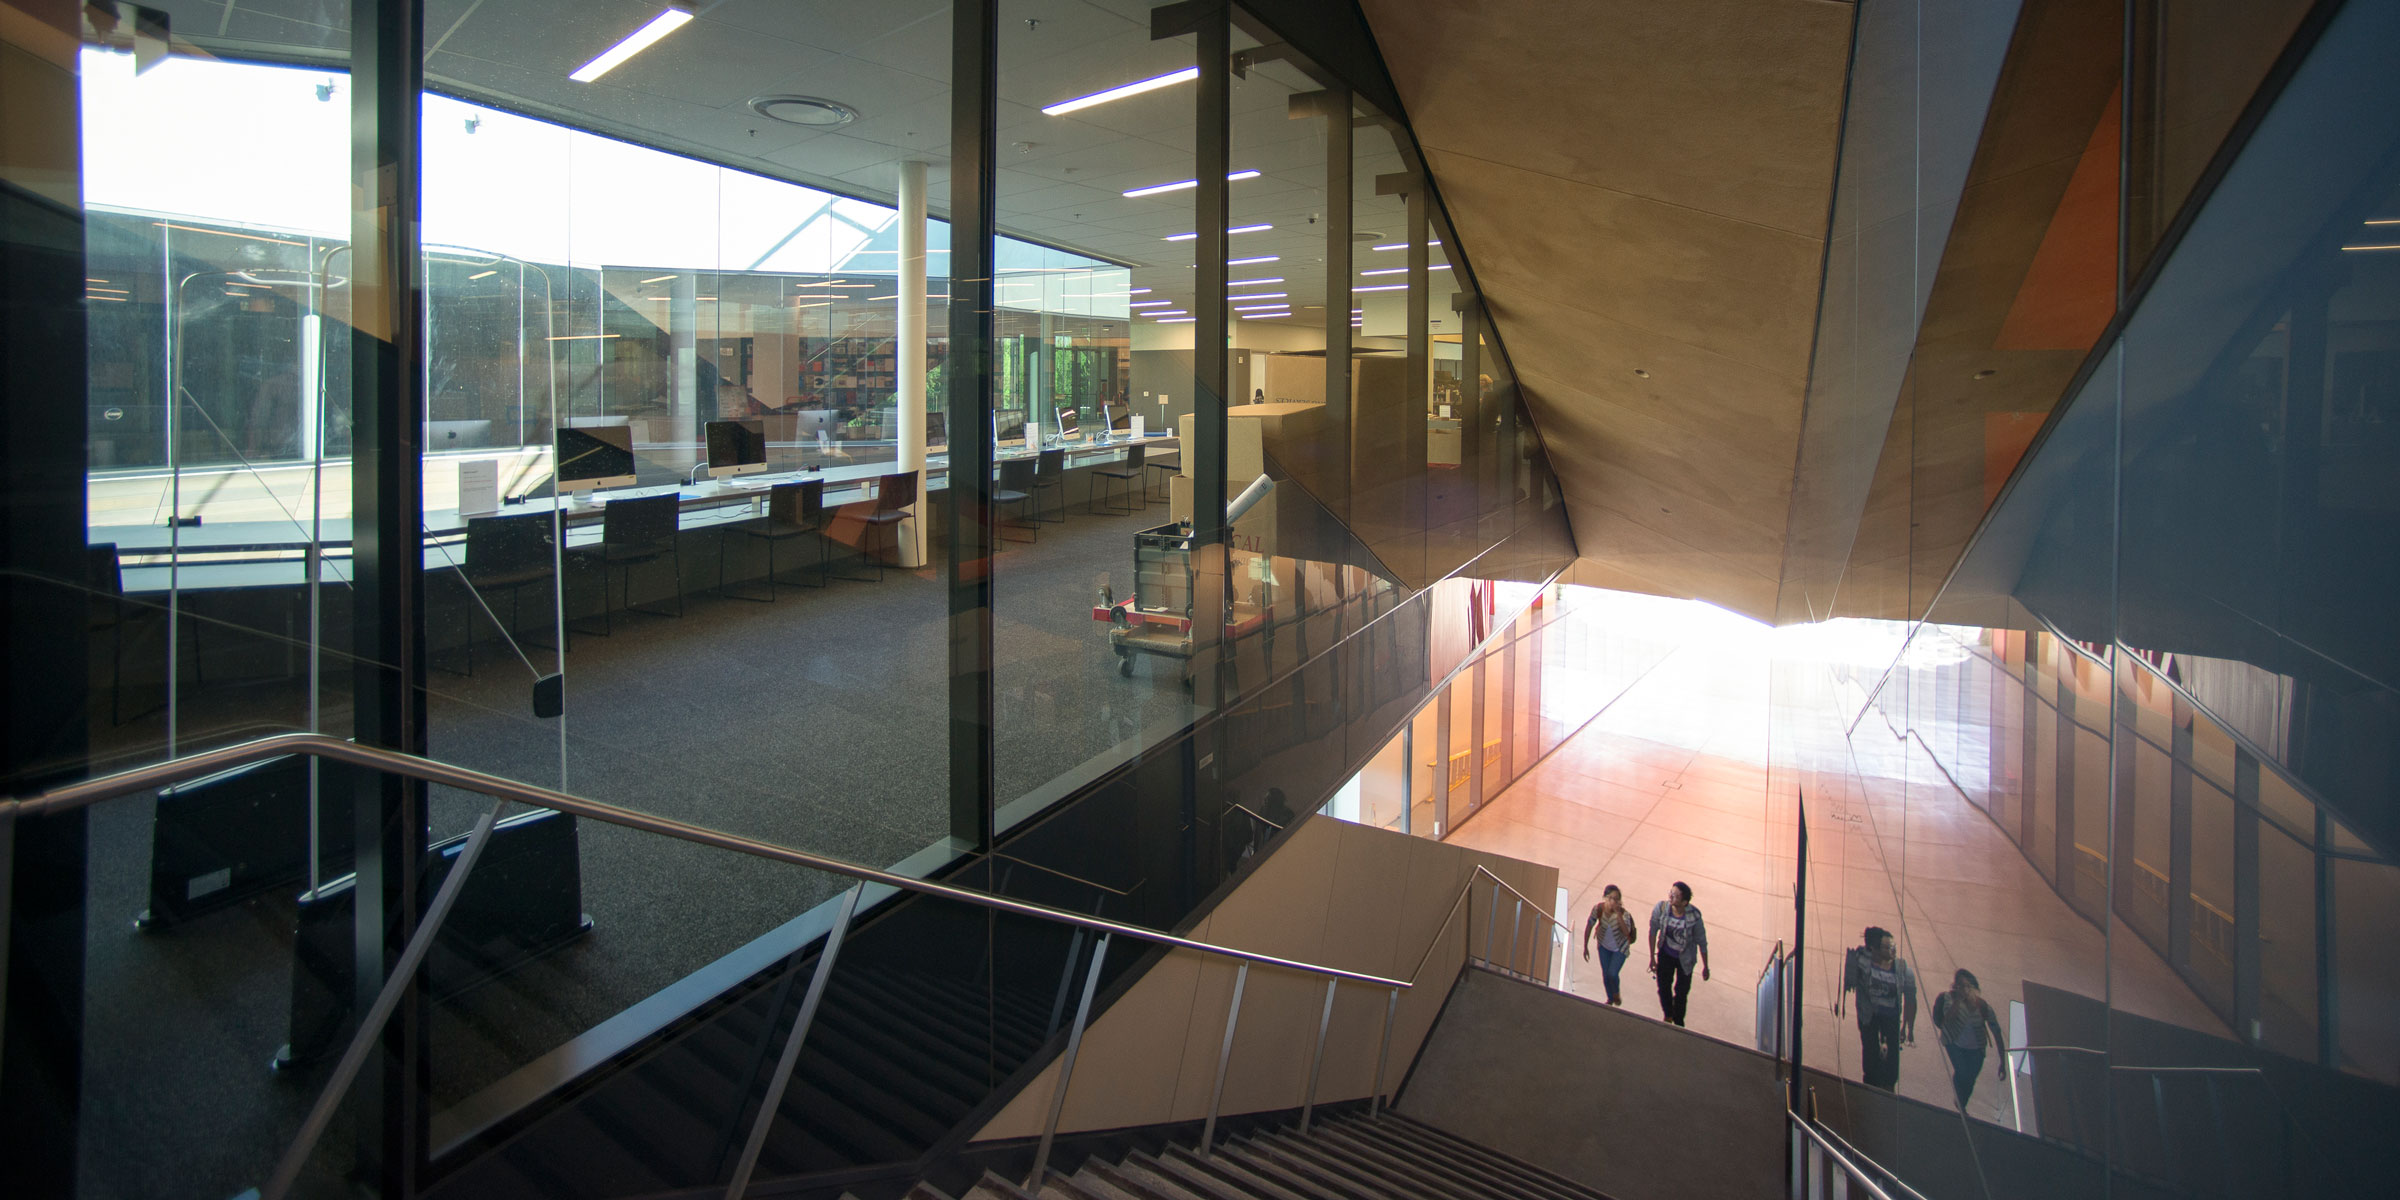 Two people ascending the covered staircase that leads to the library from the McMurtry Building's courtyard. The photo shows the floor-to-ceiling glass windows of the library, with a view of a long table that frames one side of the oculus. On the table are six desktop computers. (Image credit: L.A. Cicero)